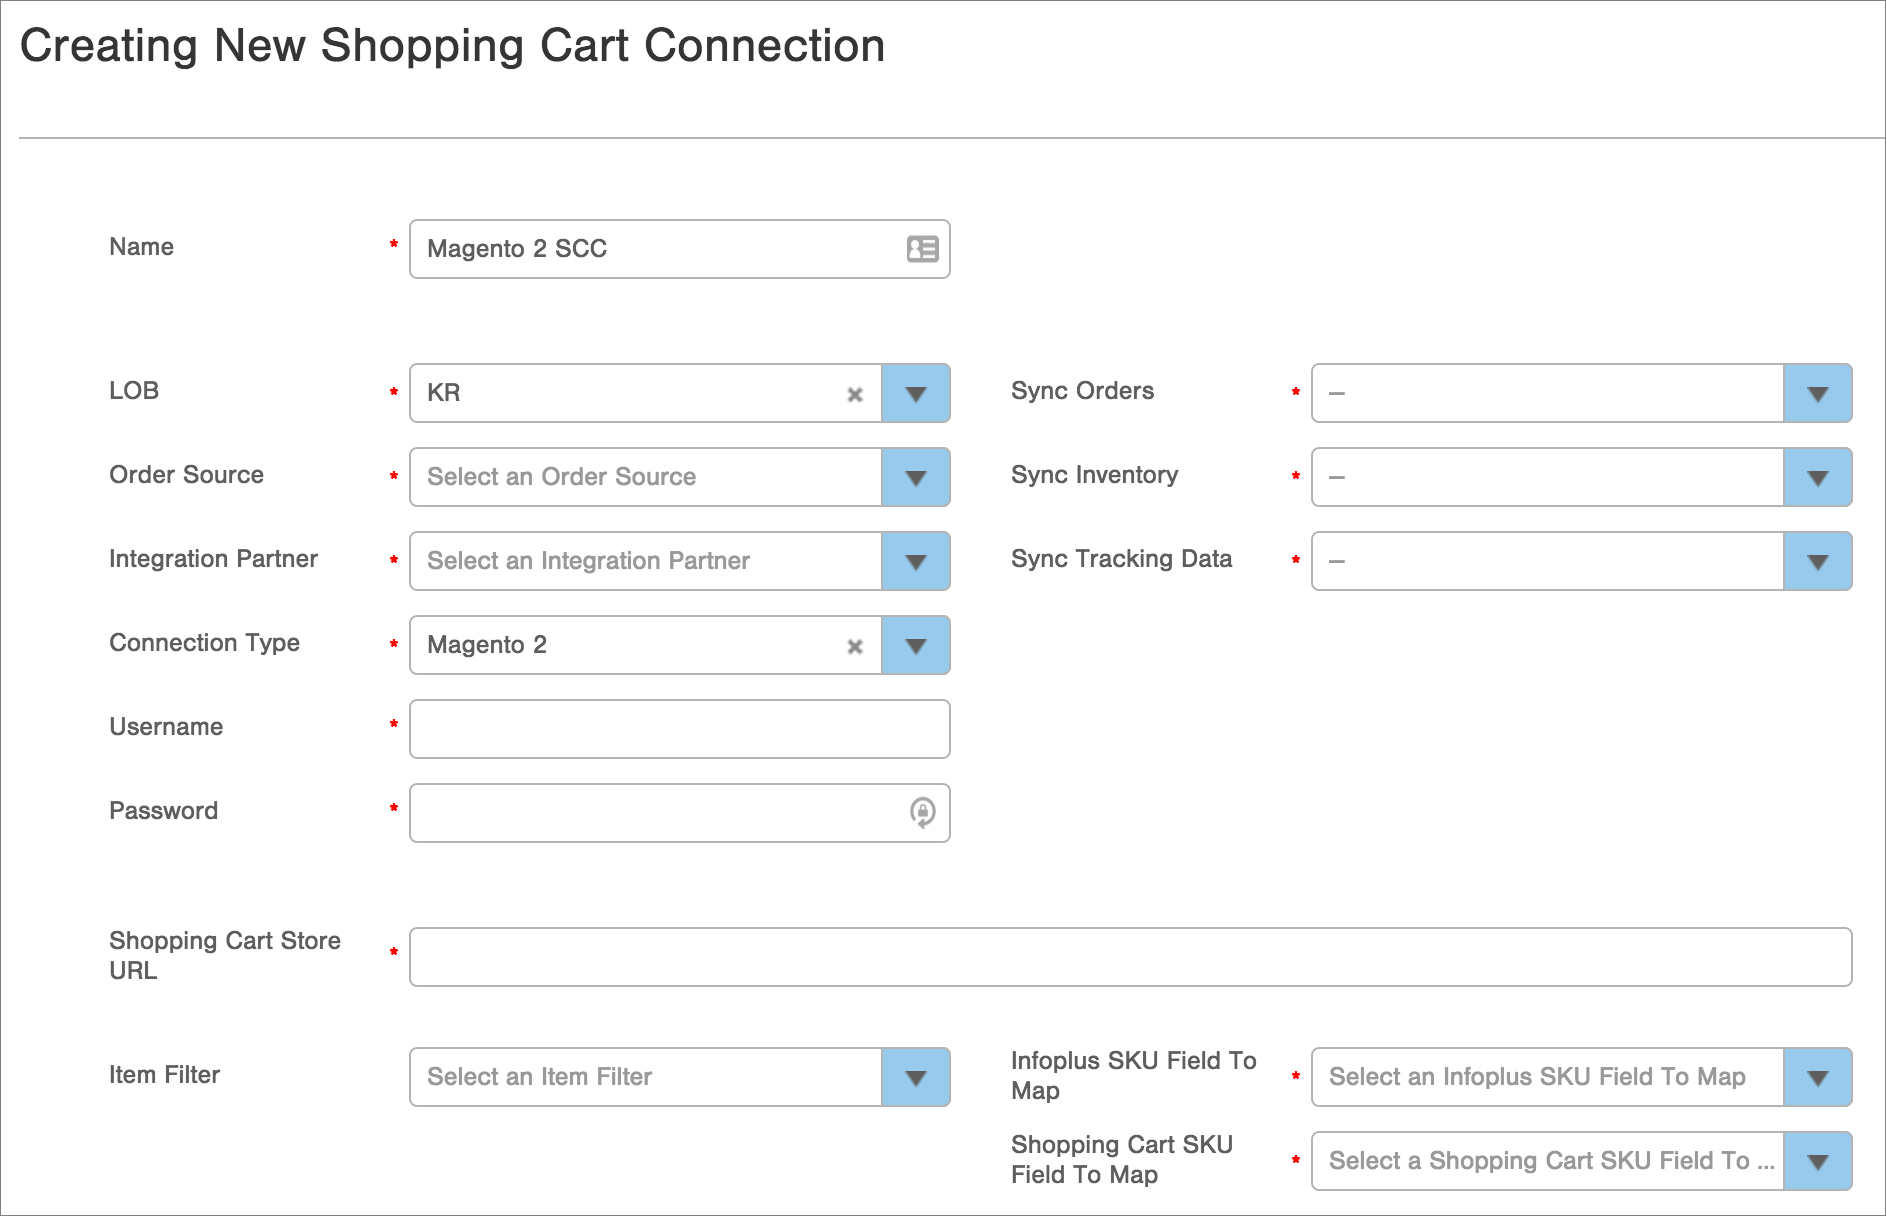 Infoplus dashboard - Creating an Infoplus Shopping Cart Connection for Magento 2